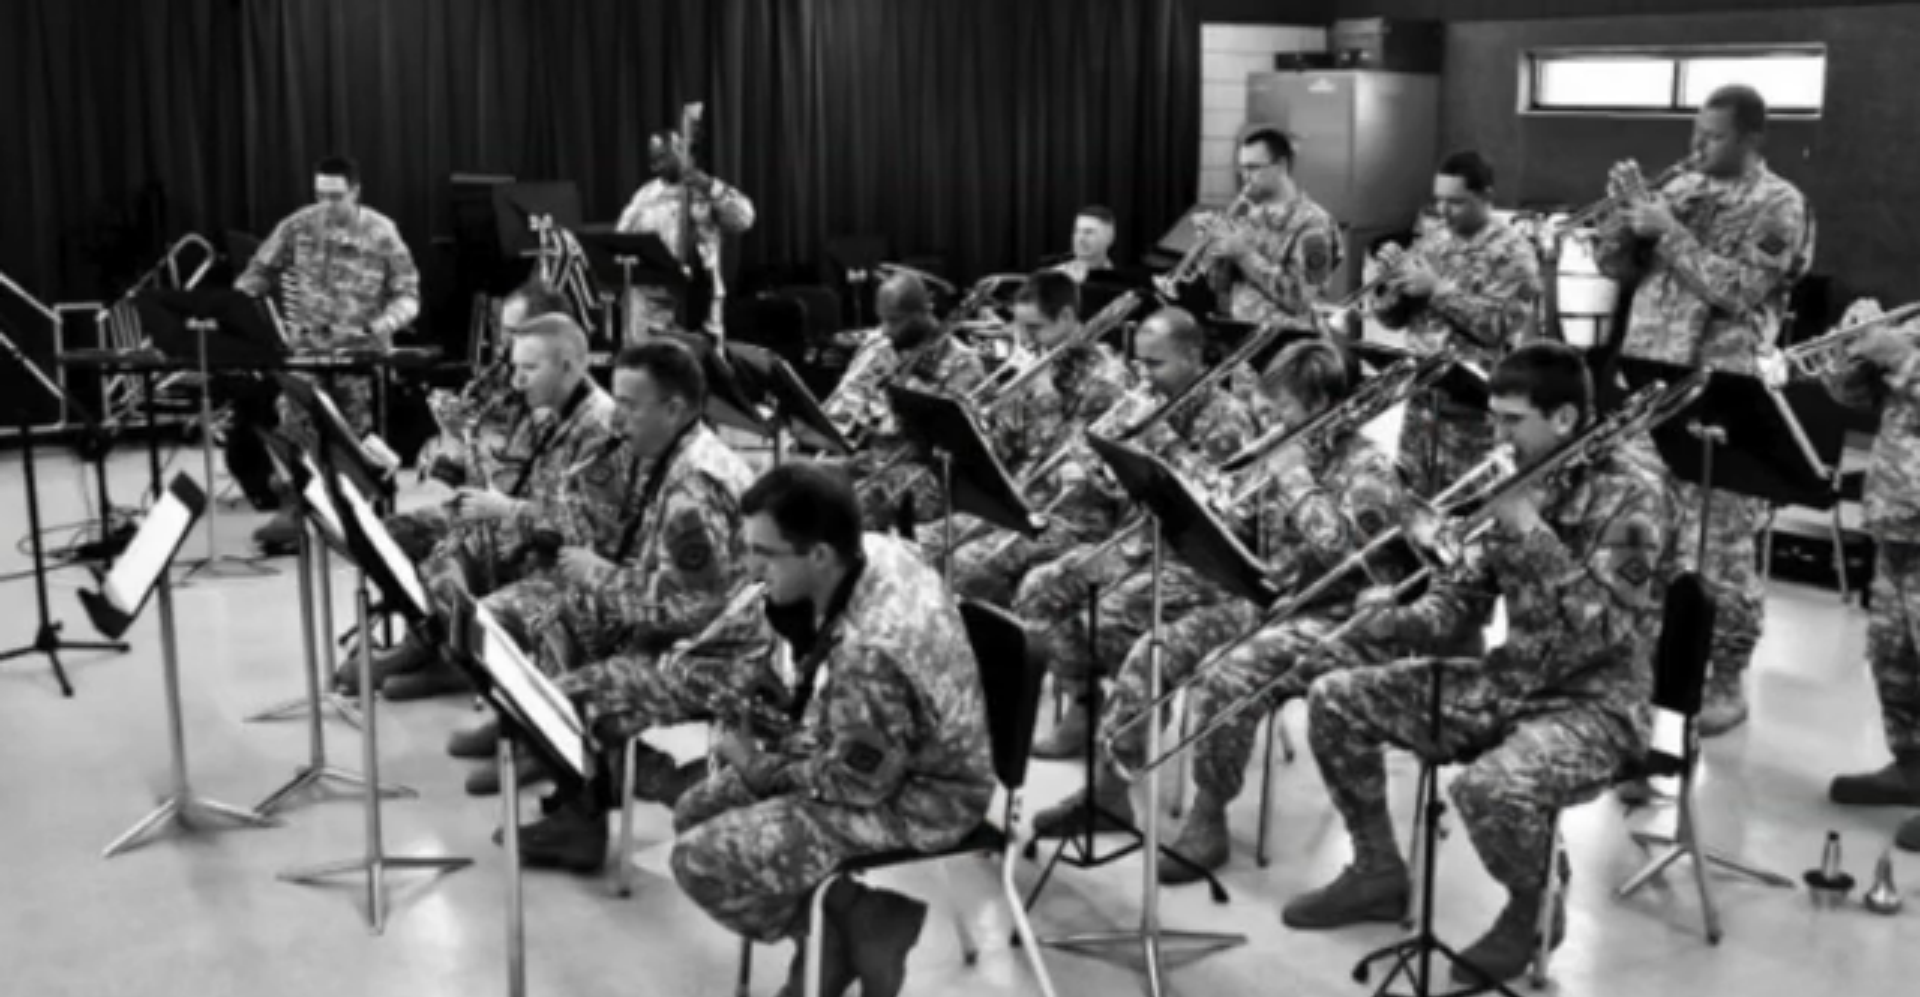 Luzzi serves country as member of Army Band